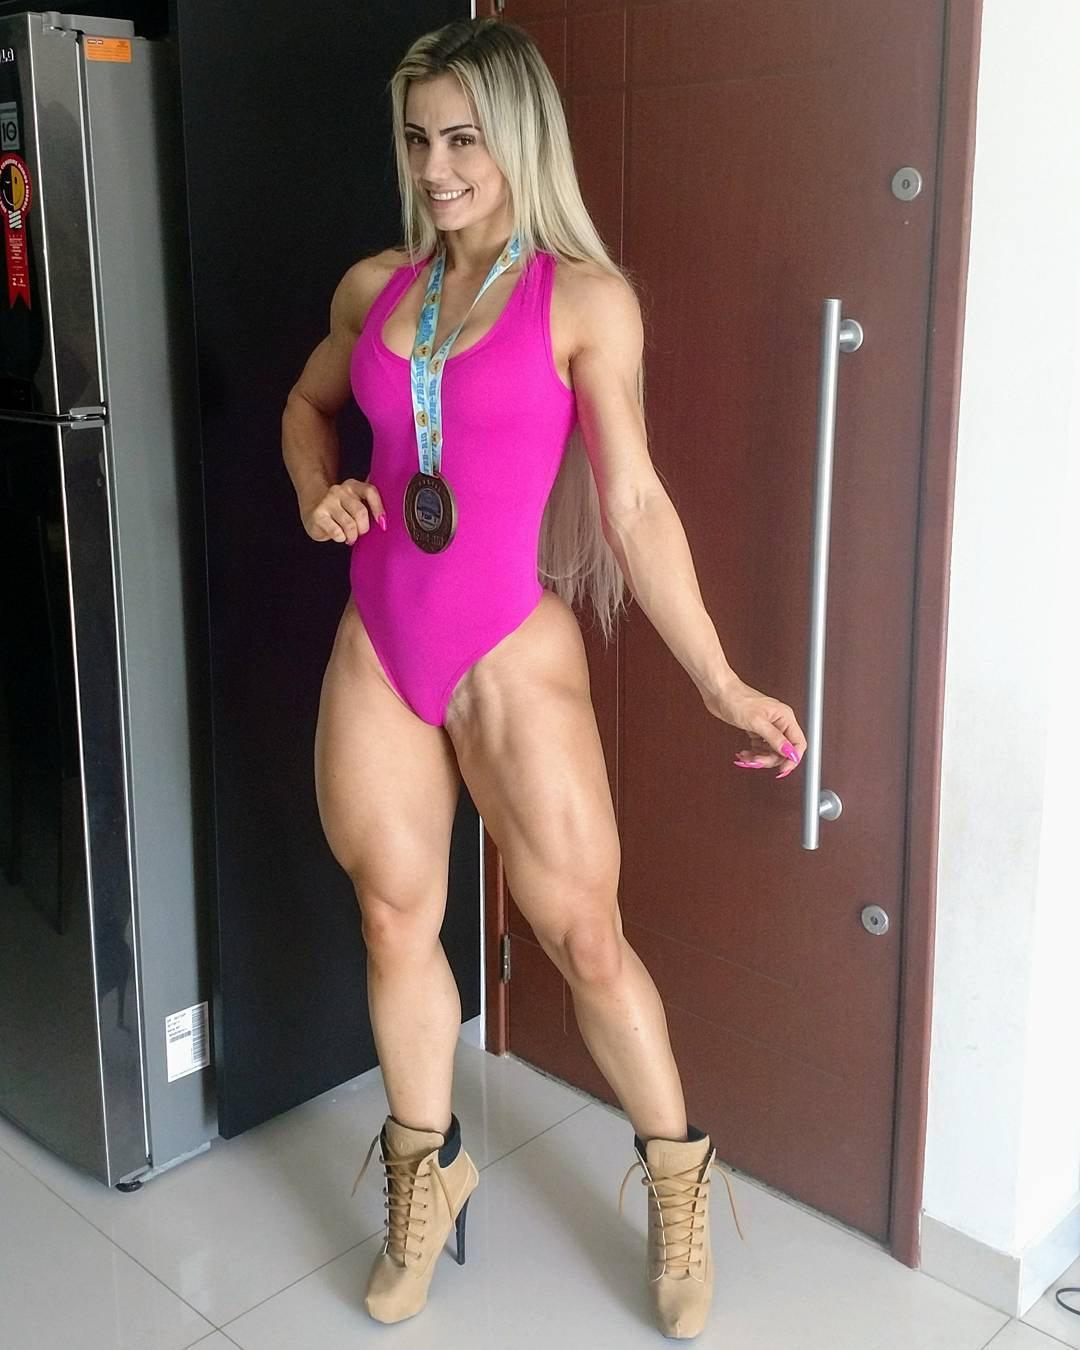 Crazy fighting girl - Vivi Winkler - Strong Girl Abs